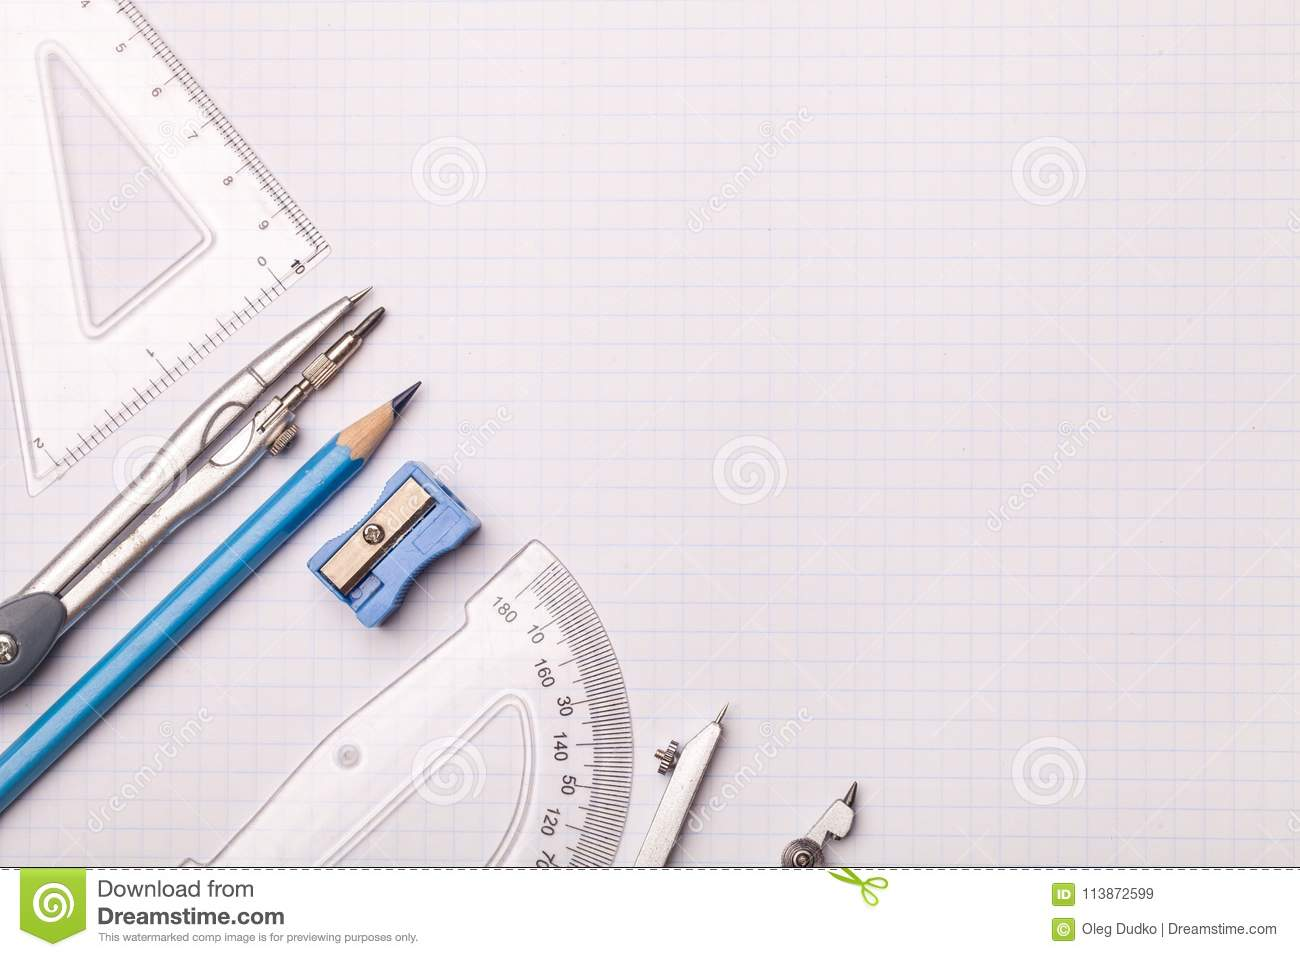 mathematical accessories stock image image of instrument 113872599